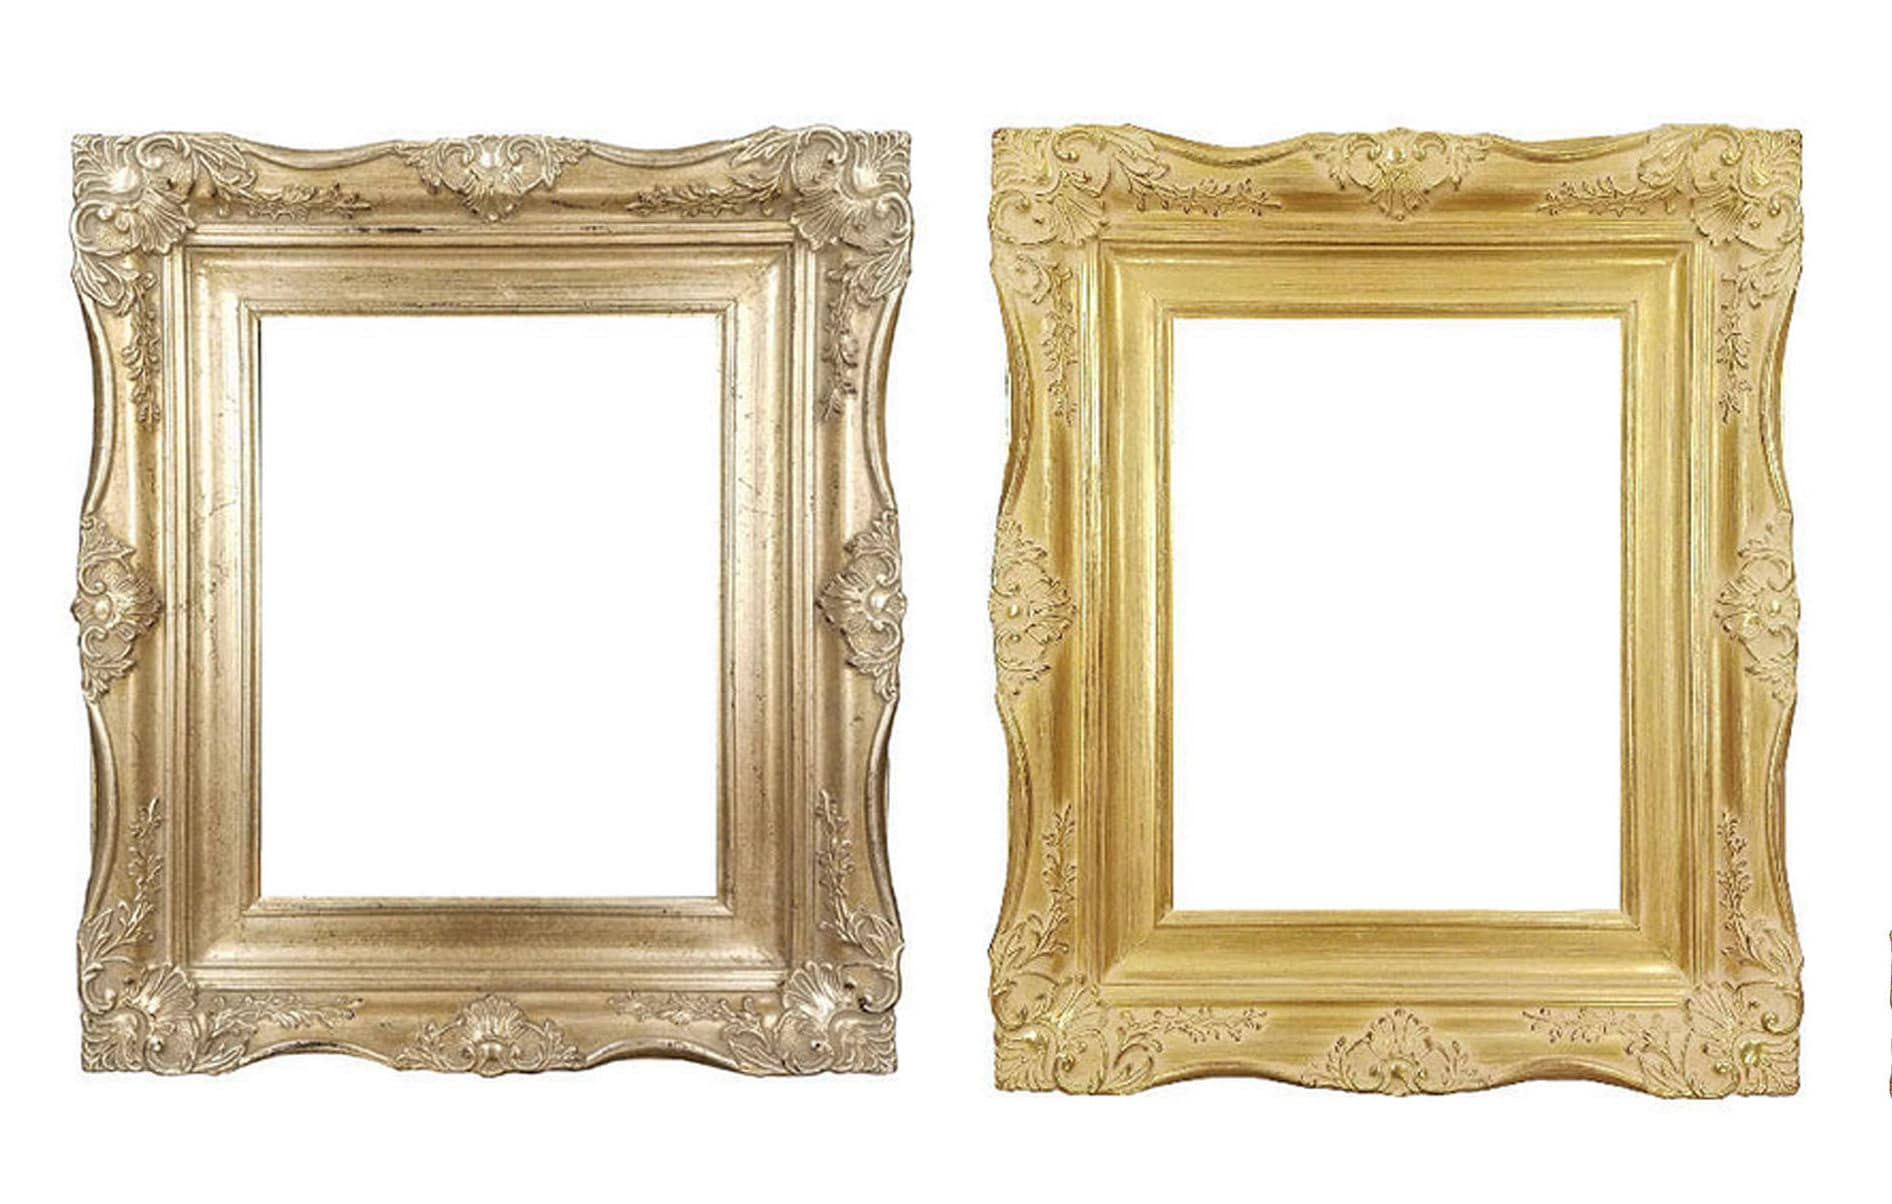 4 Ornate Baroque French Gold Or Silver Picture Frame